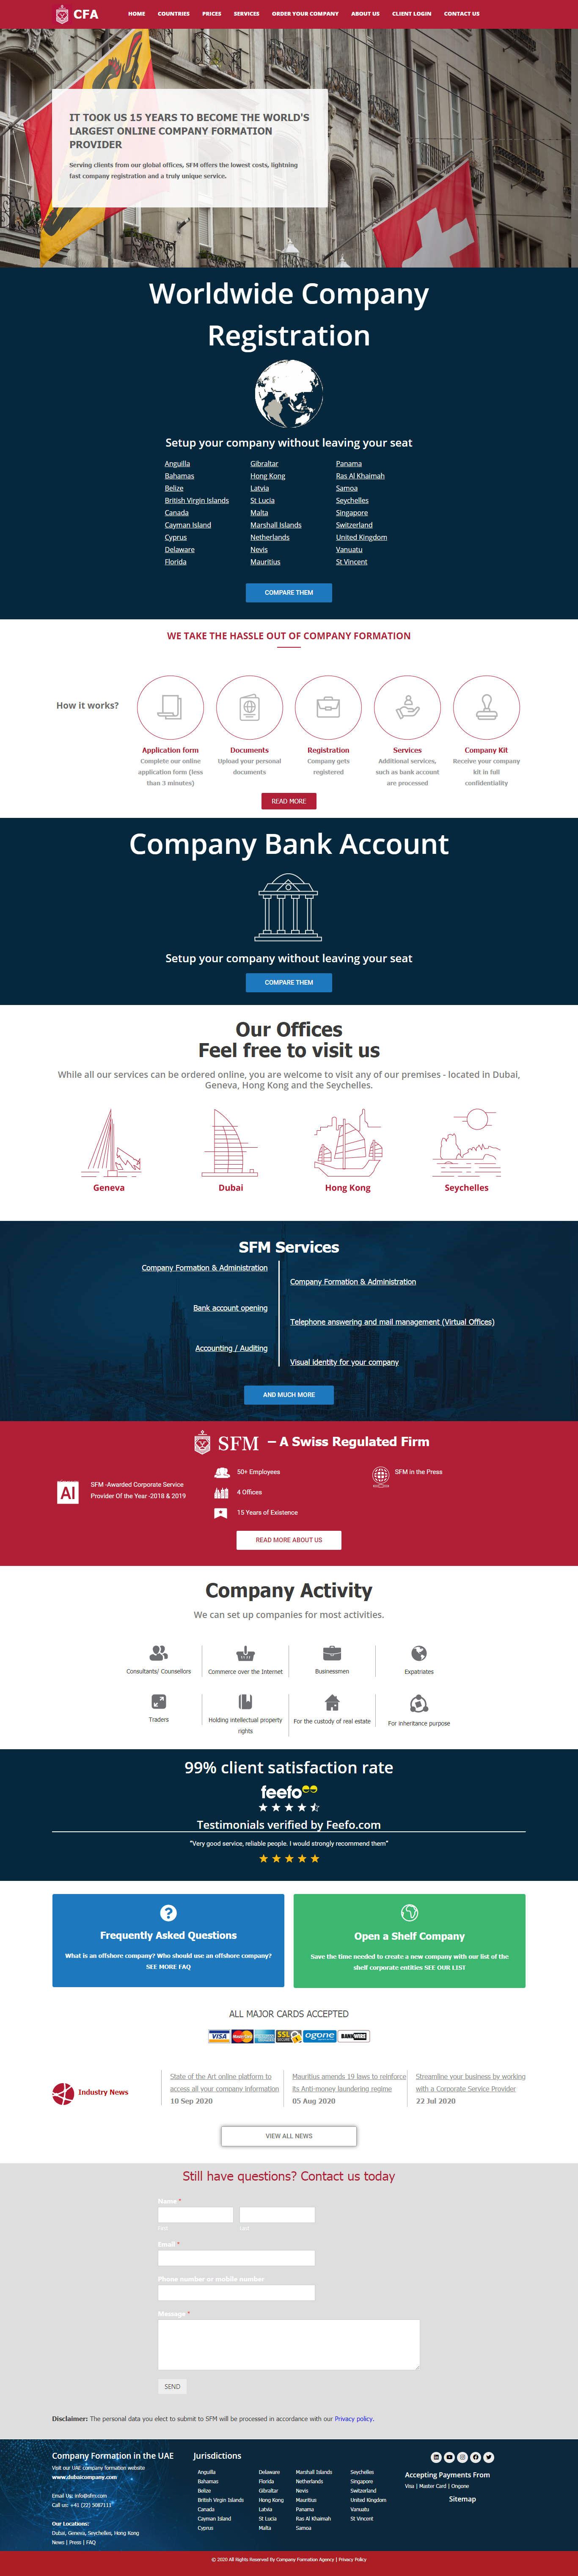 design and redesign professional looking WordPress website (5 pages )